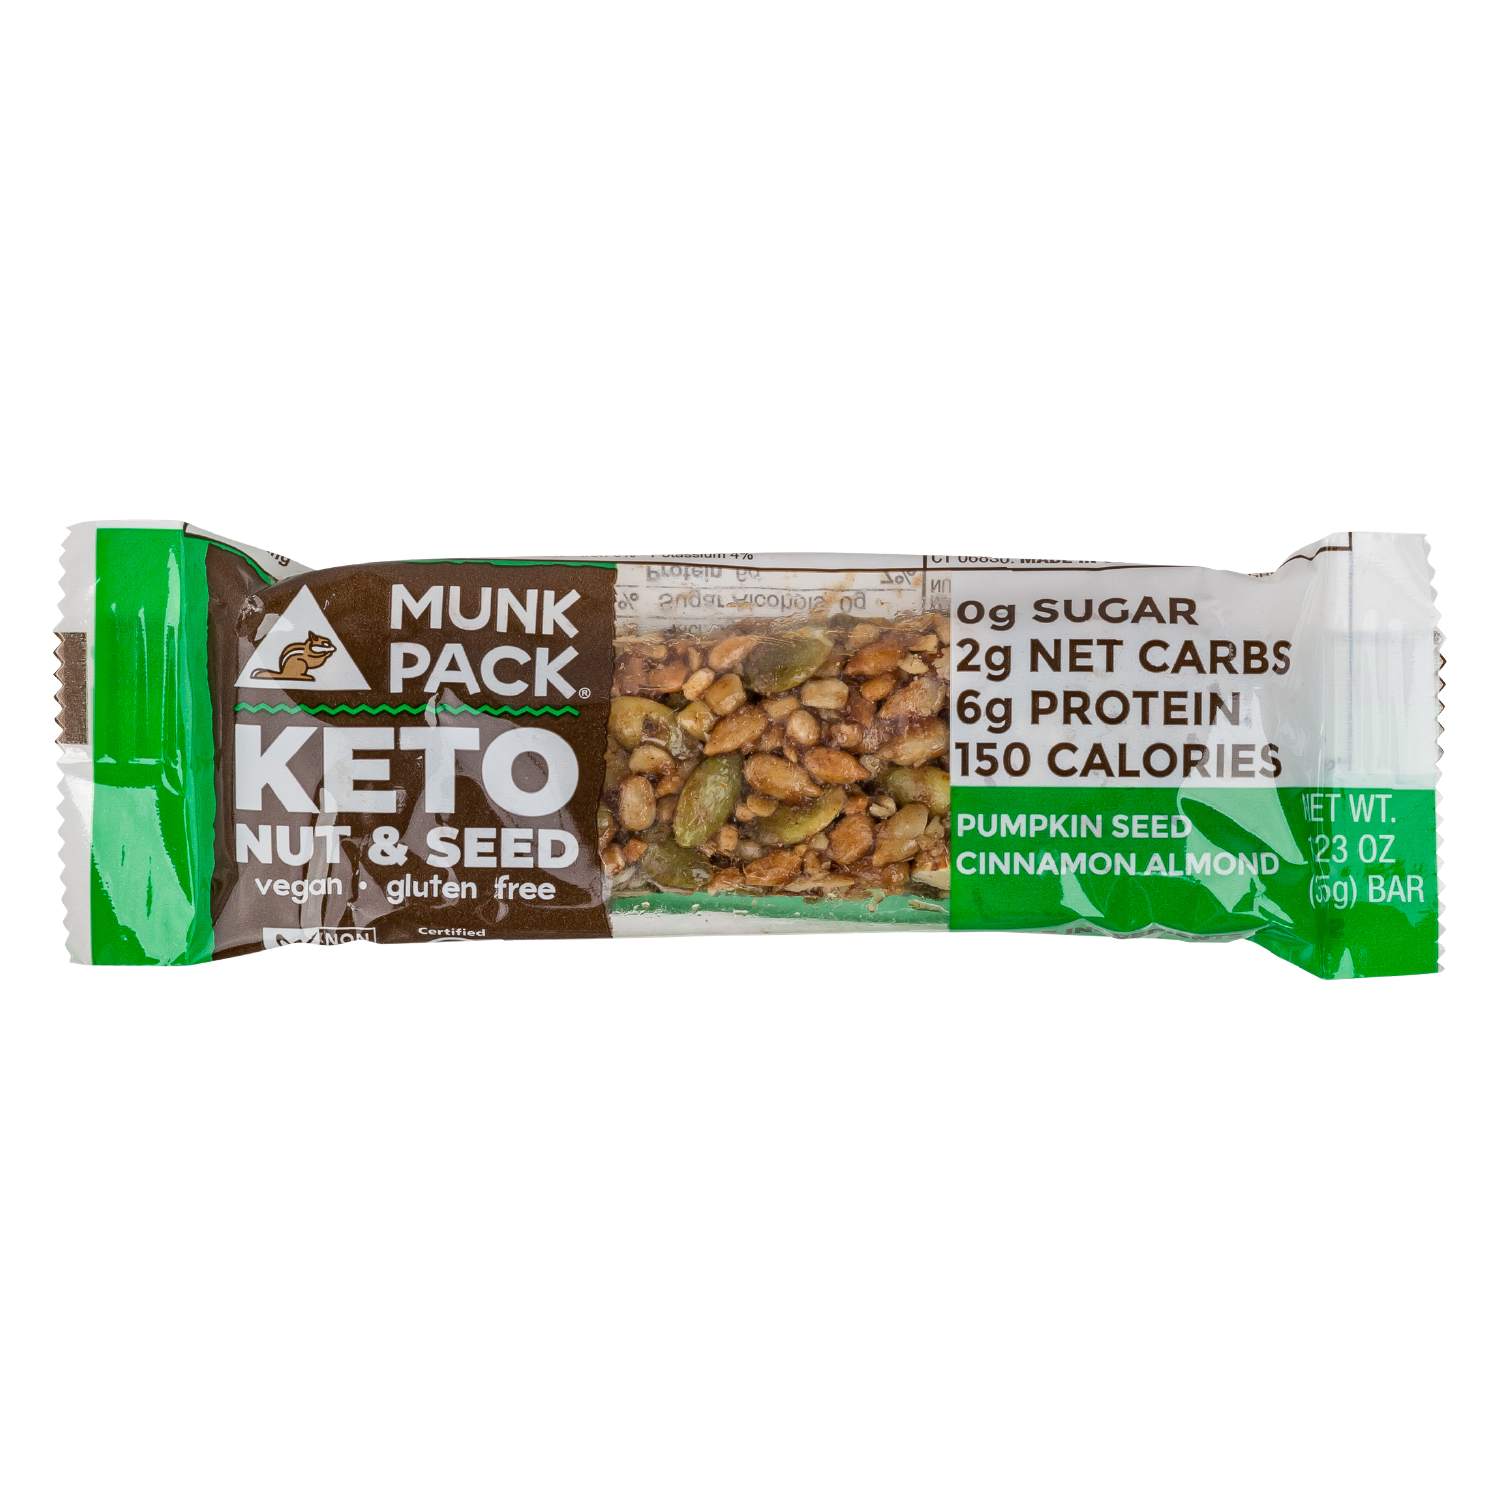 Munk Pack Keto Nuts & Seed Bar